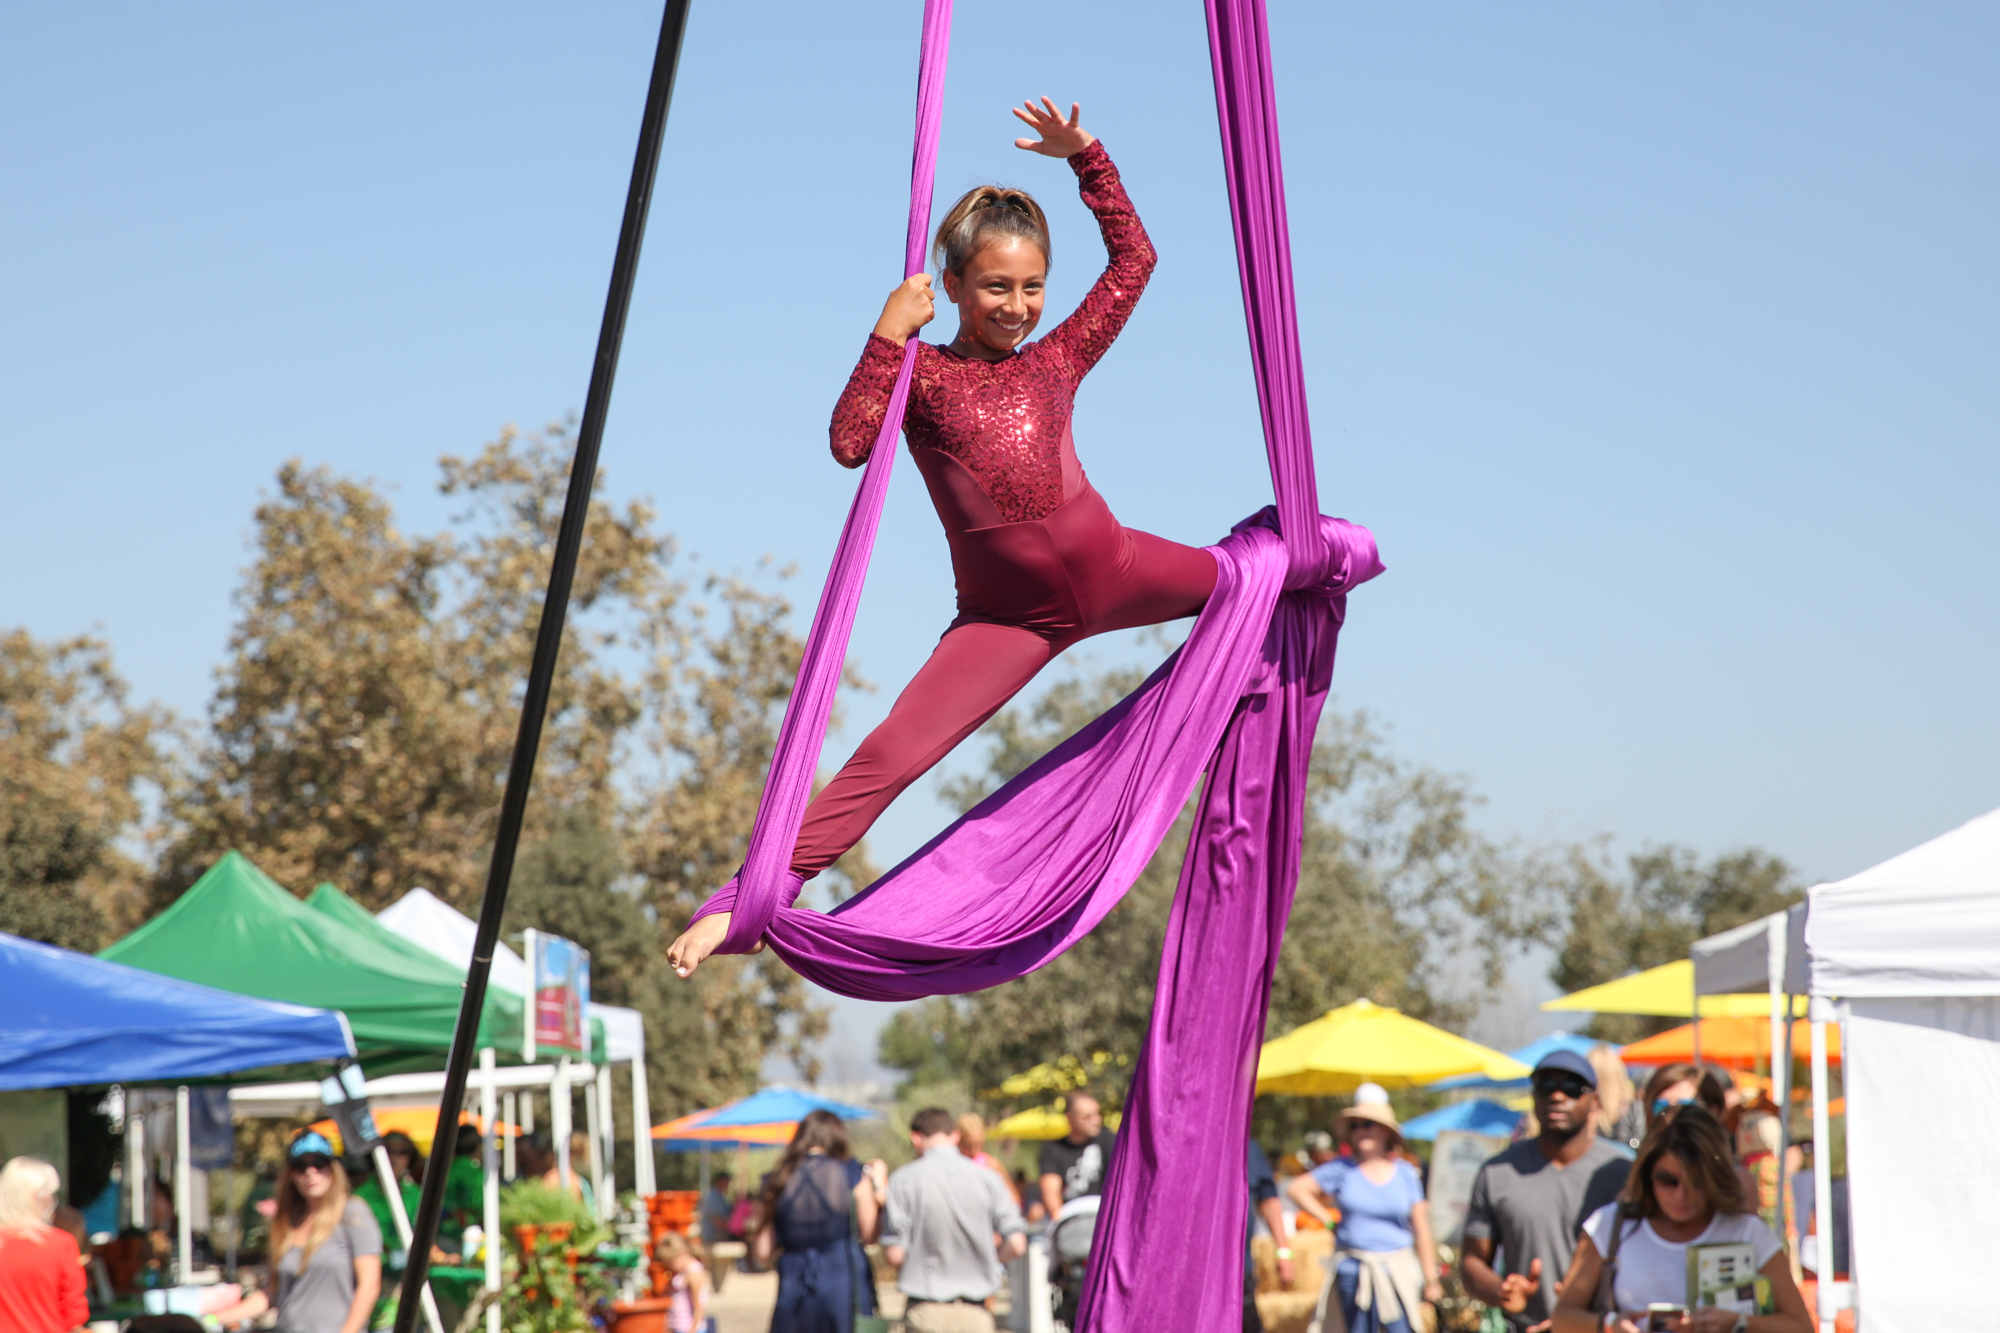 Tatum Cuessy, 11, of Newport Beach, was one of many young performers doing aerial acrobatics from AVANTI Dance Company in Costa Mesa. Photo: Allison Jarrell